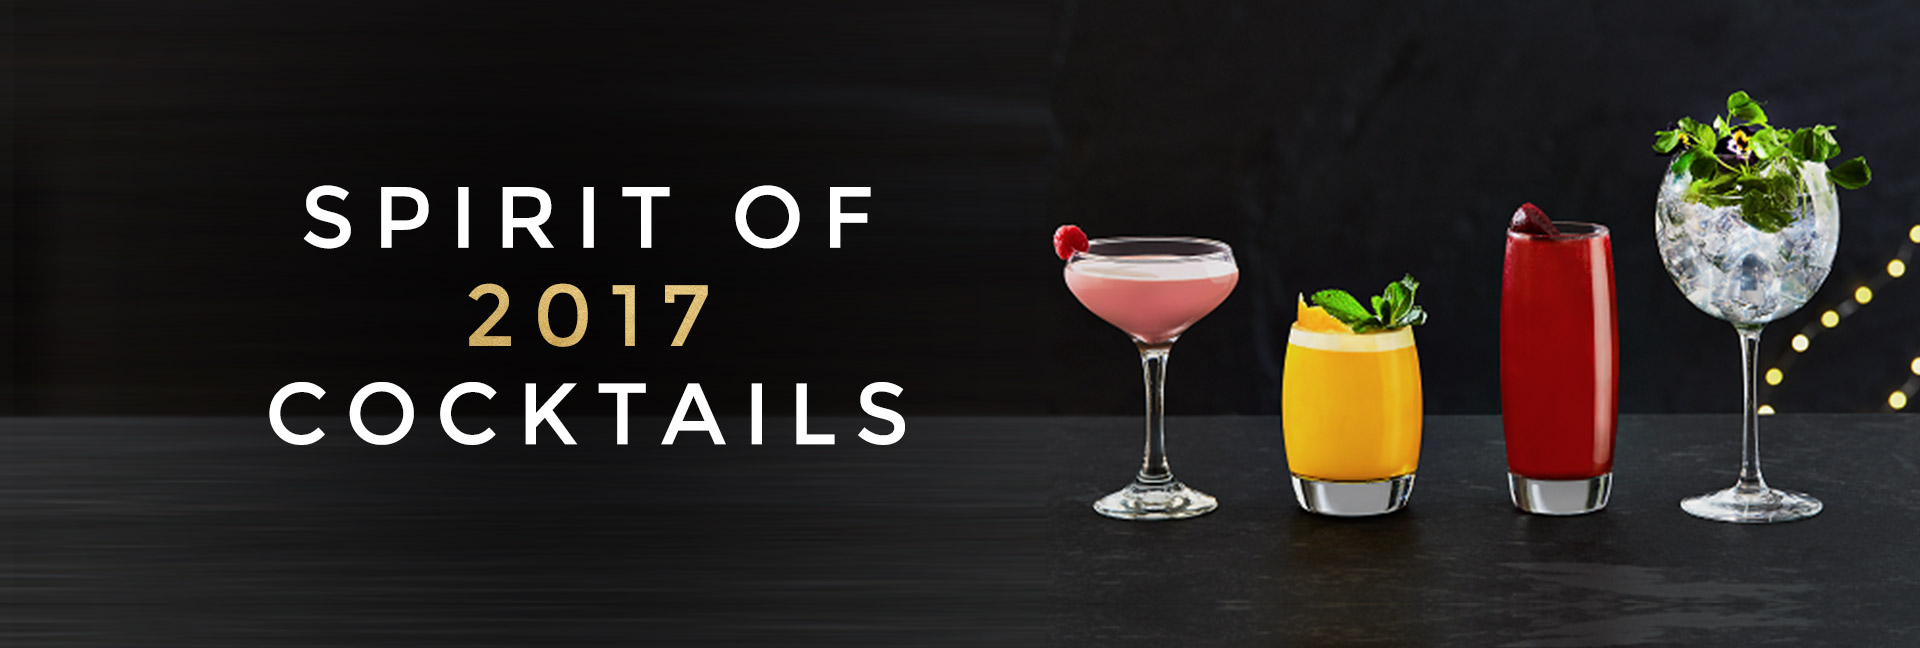 Spirit of 2017 cocktails at All Bar One Exchange Edinburgh